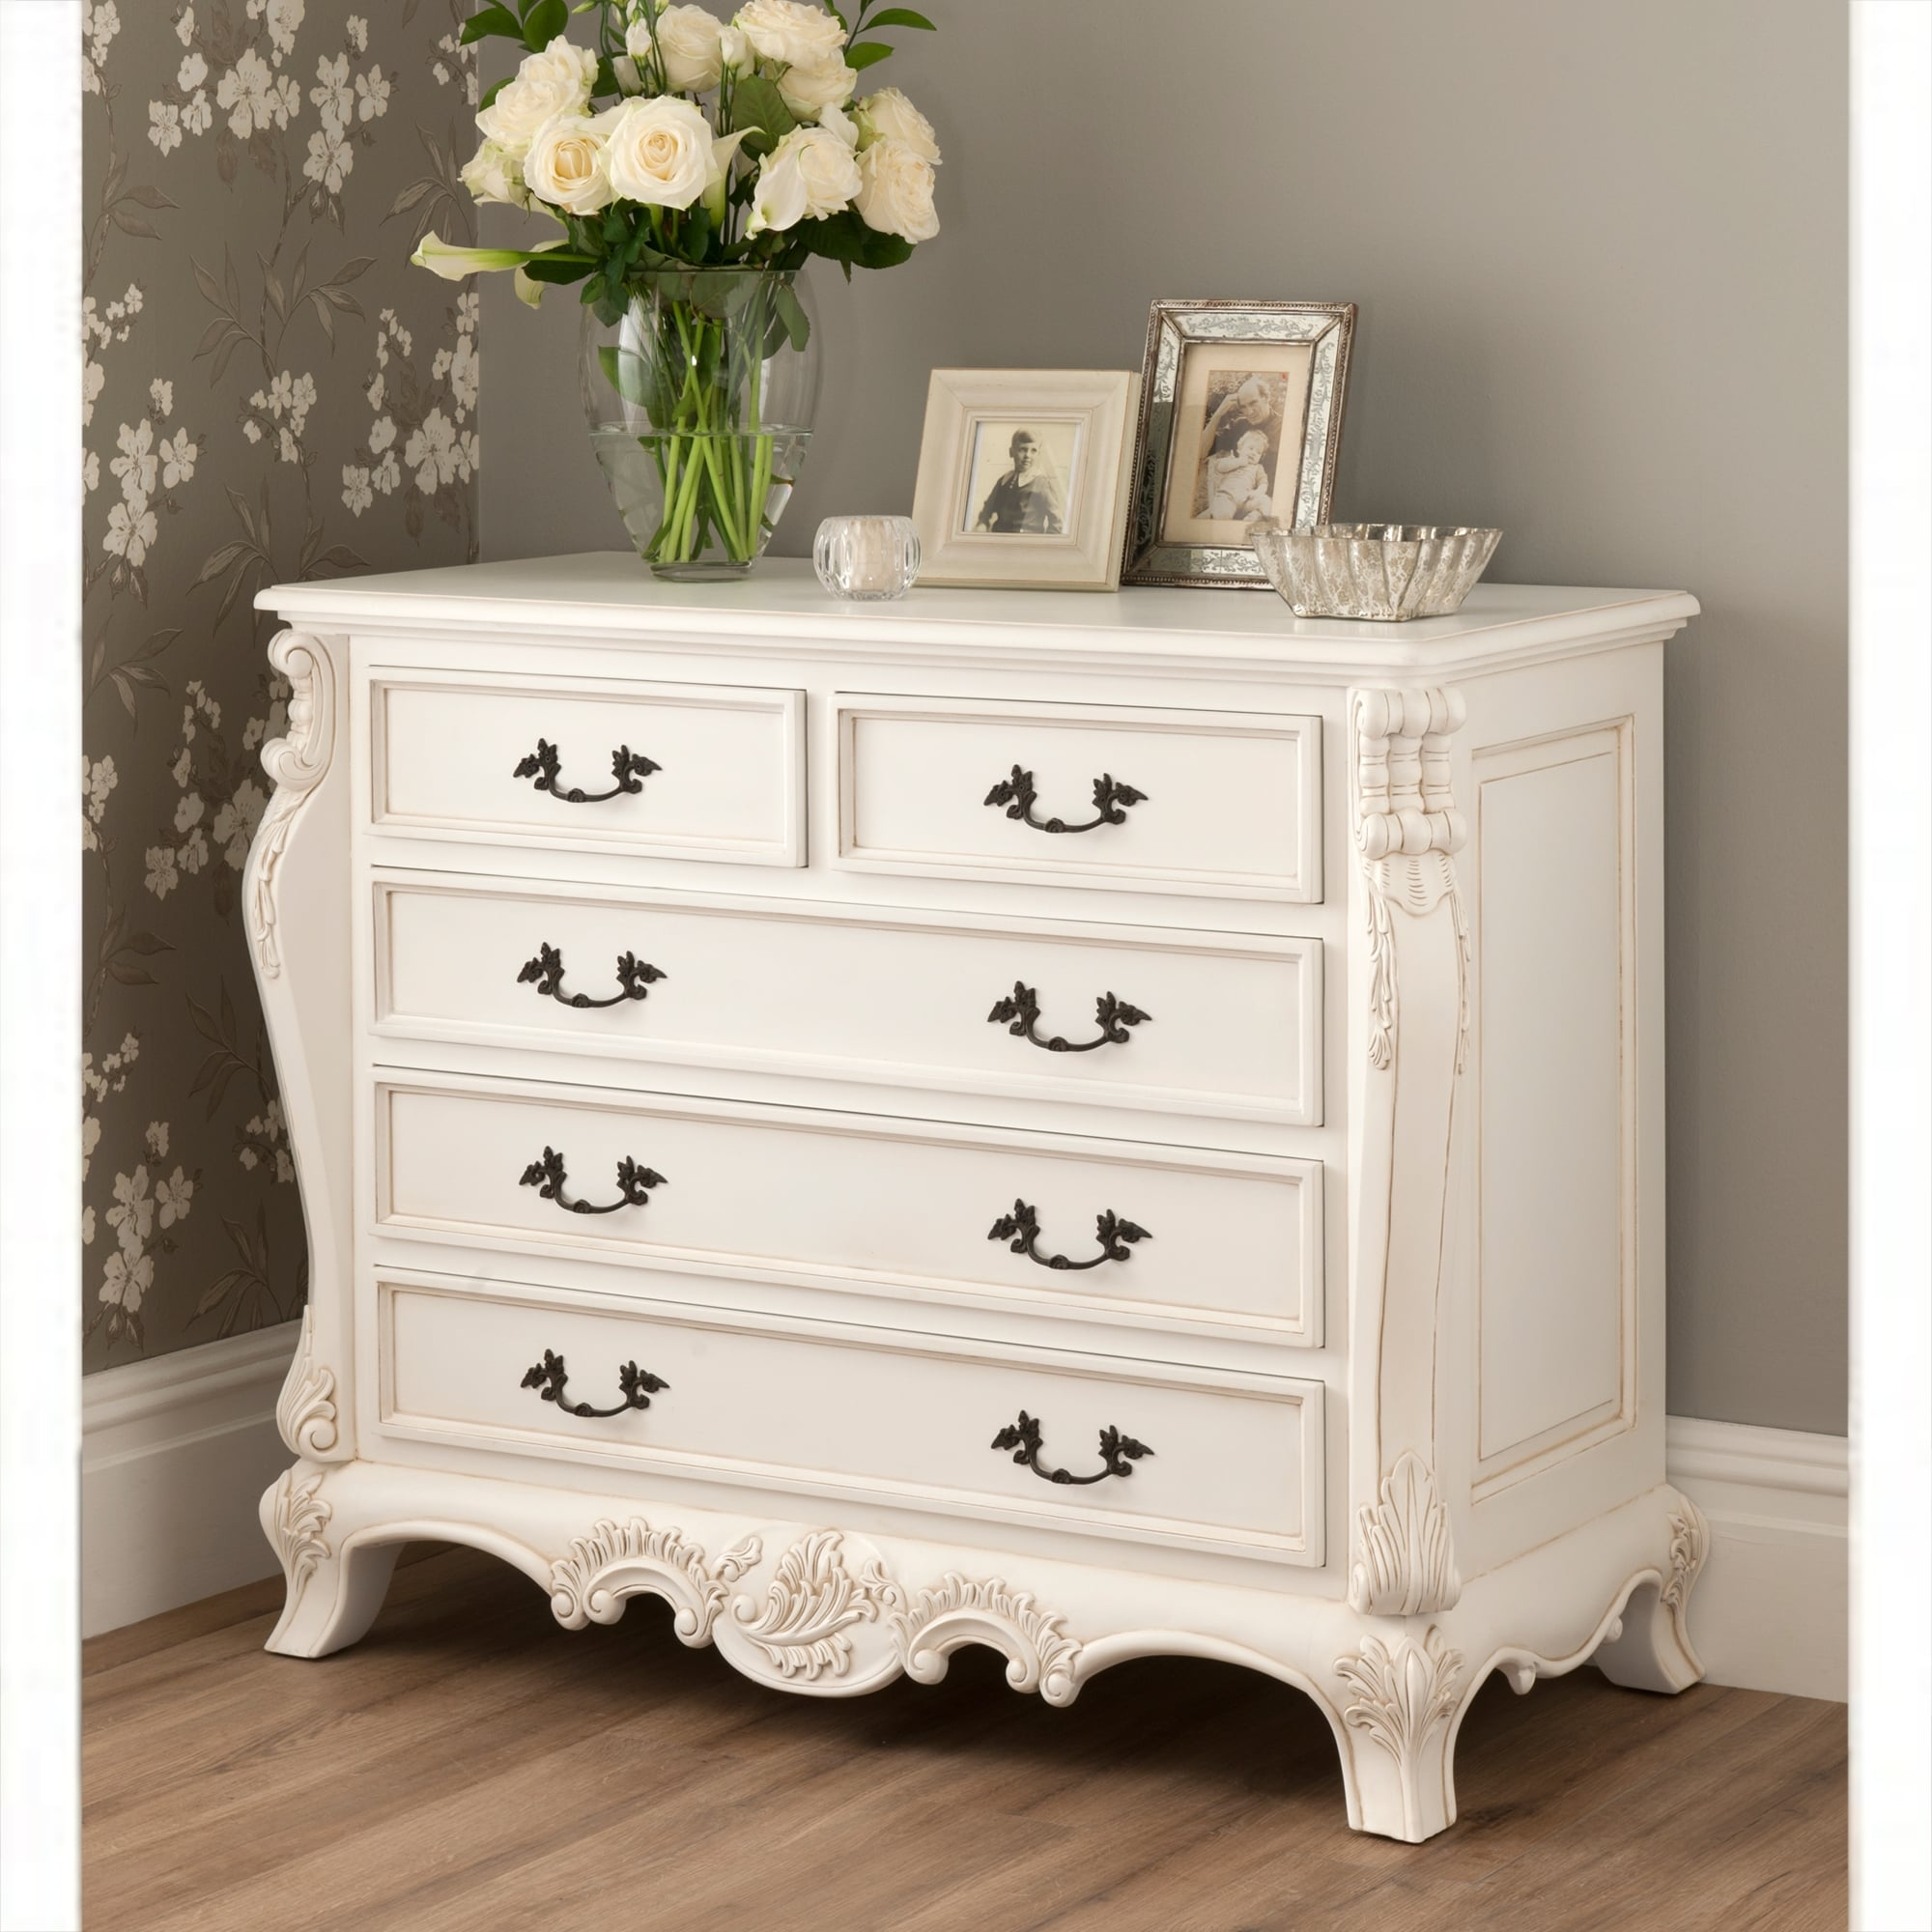 Furniture Direct Online: French Style Furniture Online